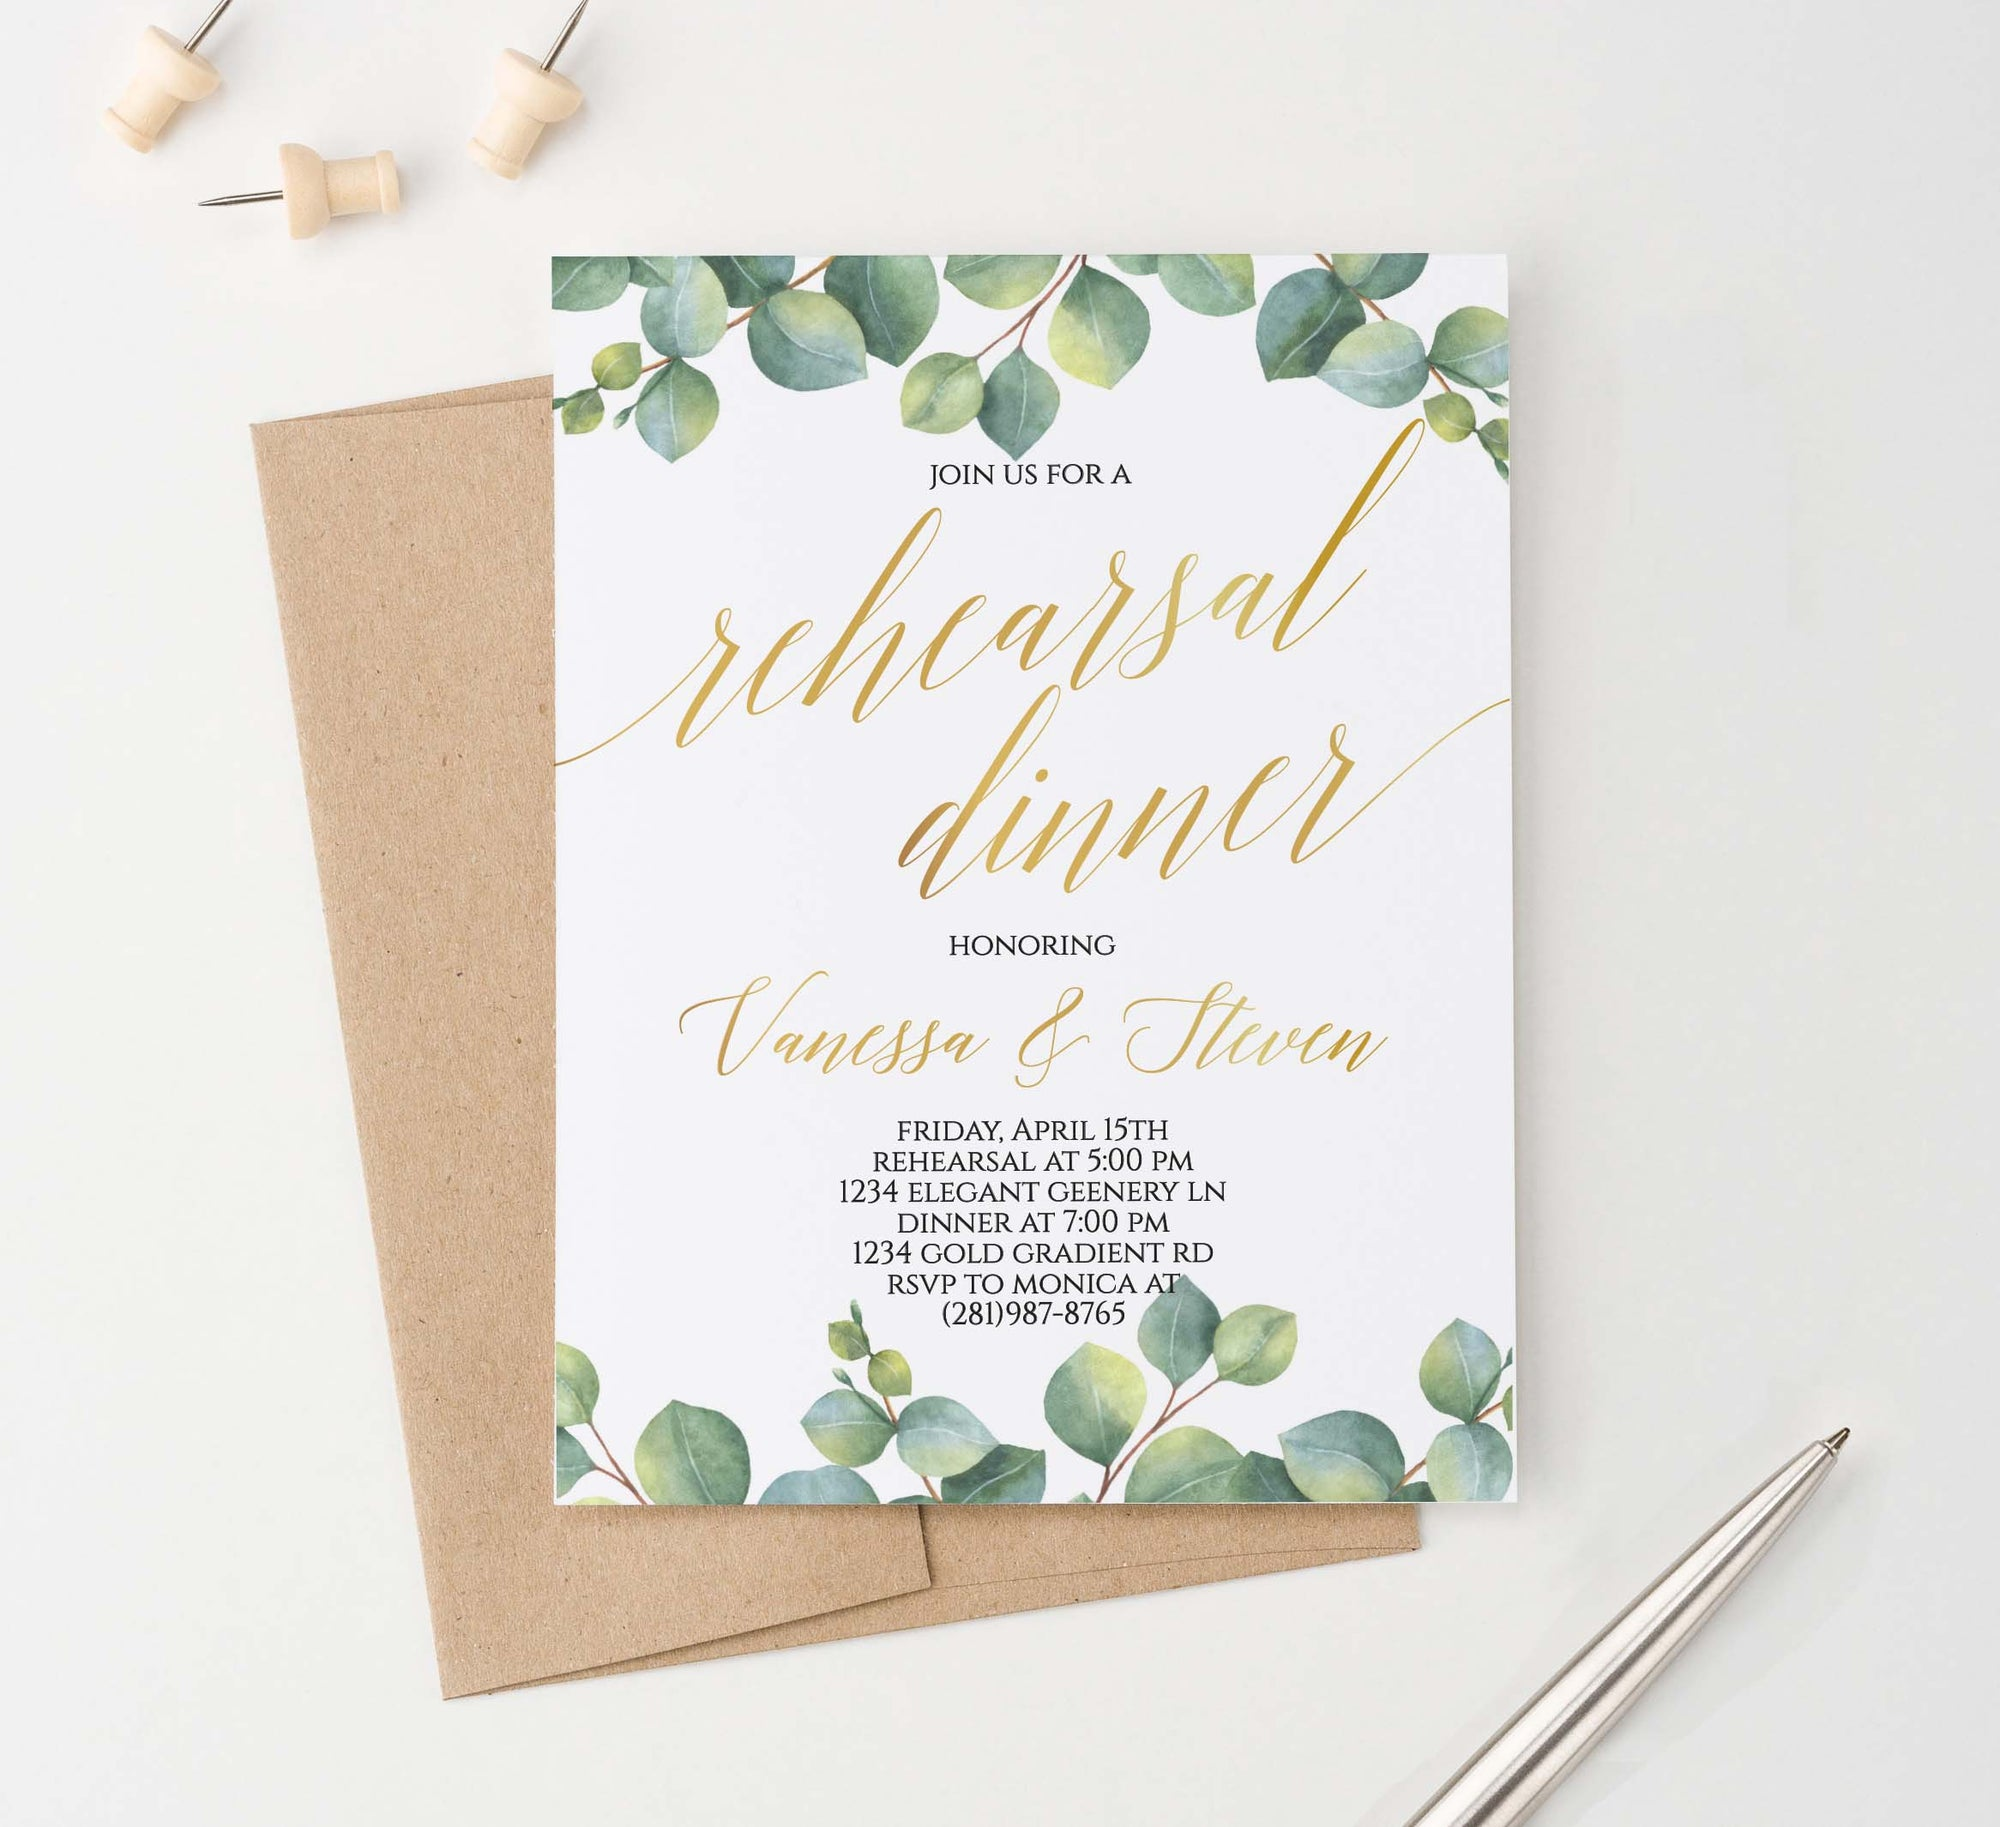 RDI010 elegant greenery rehearsal dinner invites personalized leaves leaf